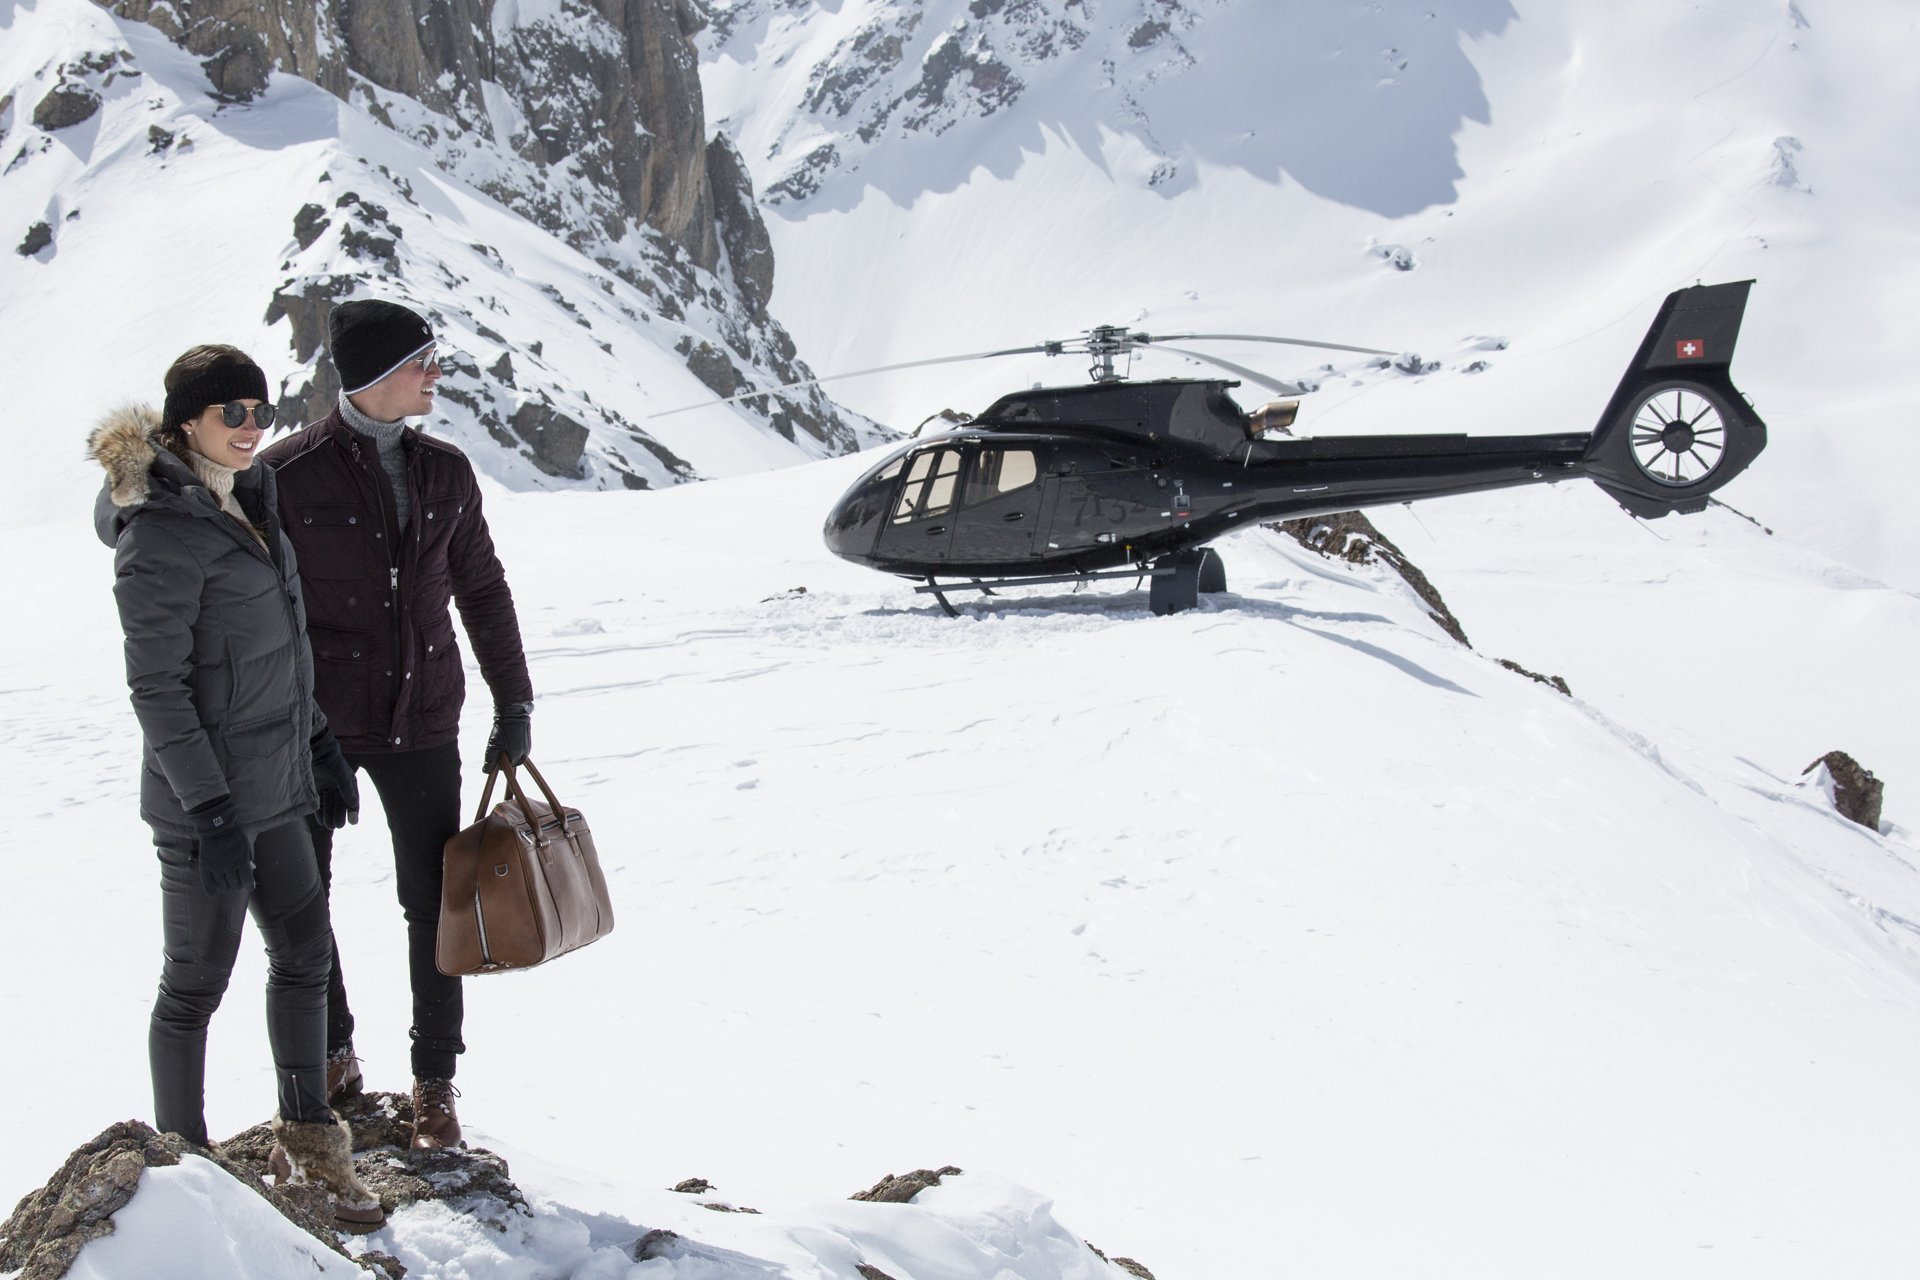 Fast, comfortable, convenient and secluded – it's easy to see the appeal of private helicopter travel.